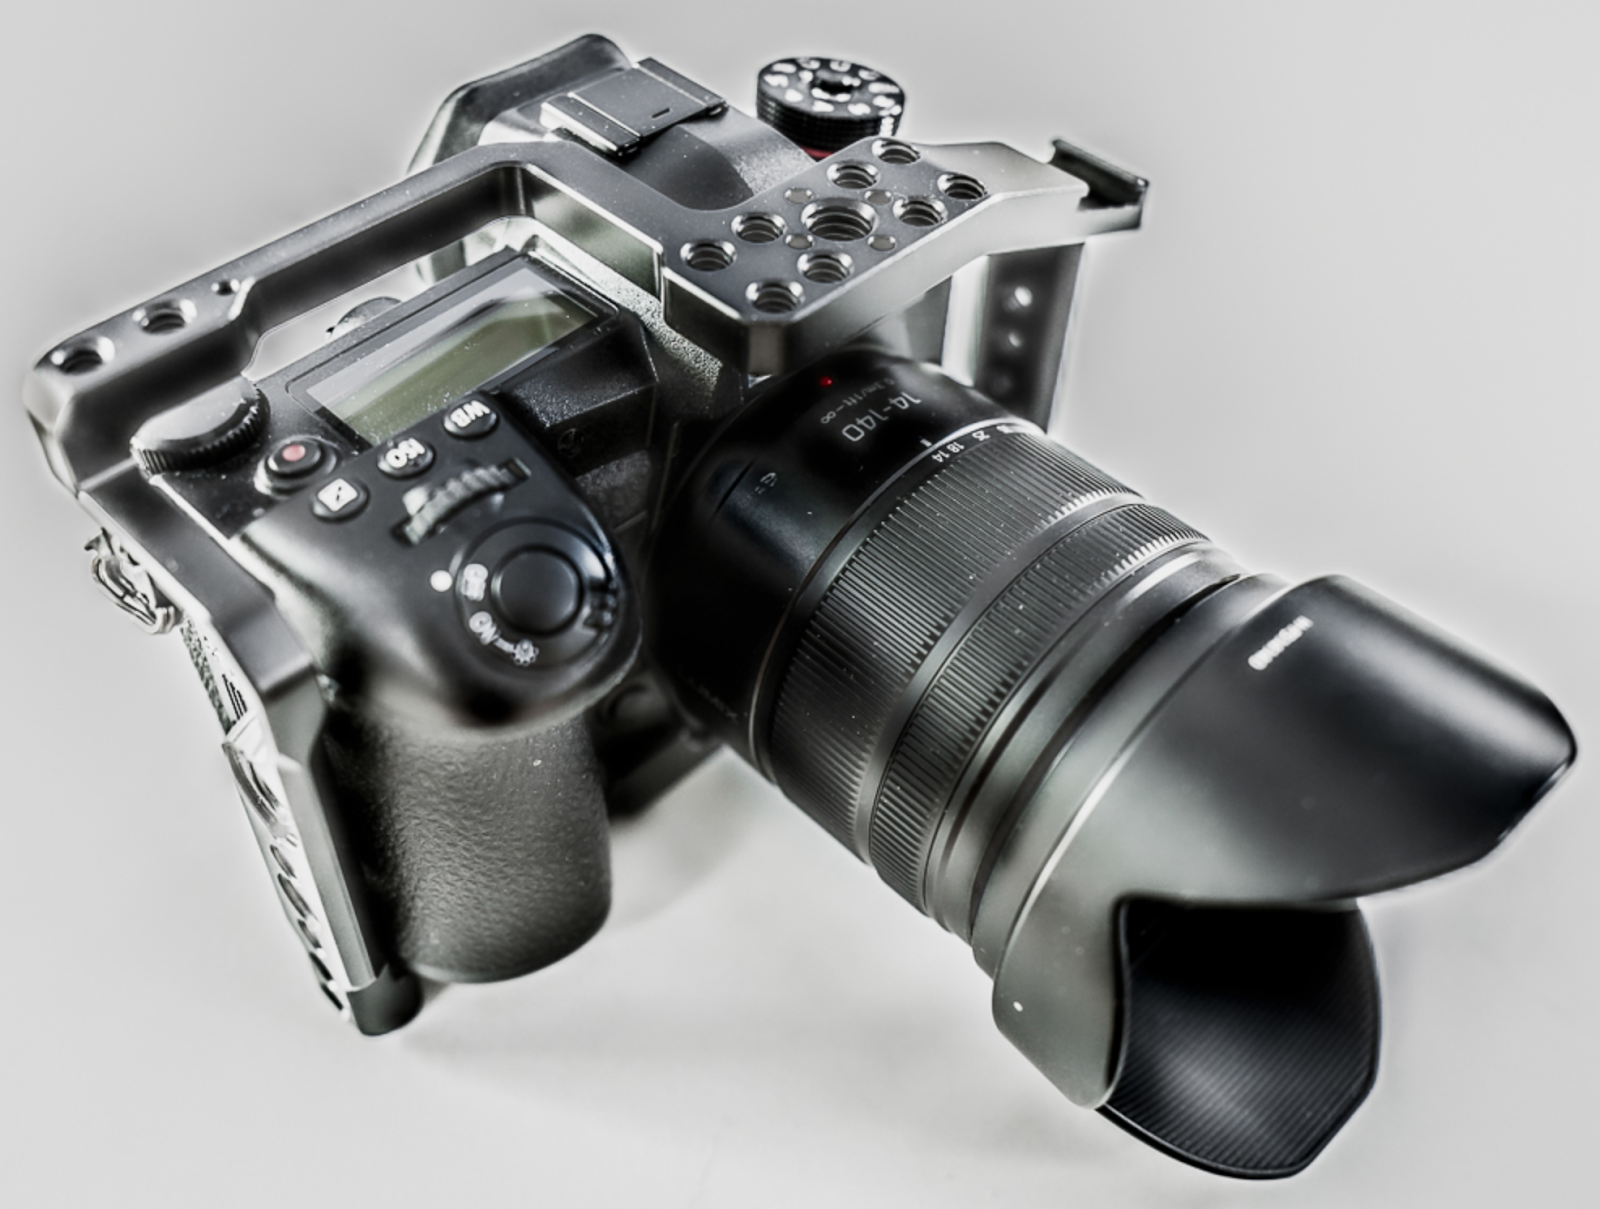 THE PANASONIC LUMIX GH5, GH5s, G9 FIRMWARE UPDATES - What